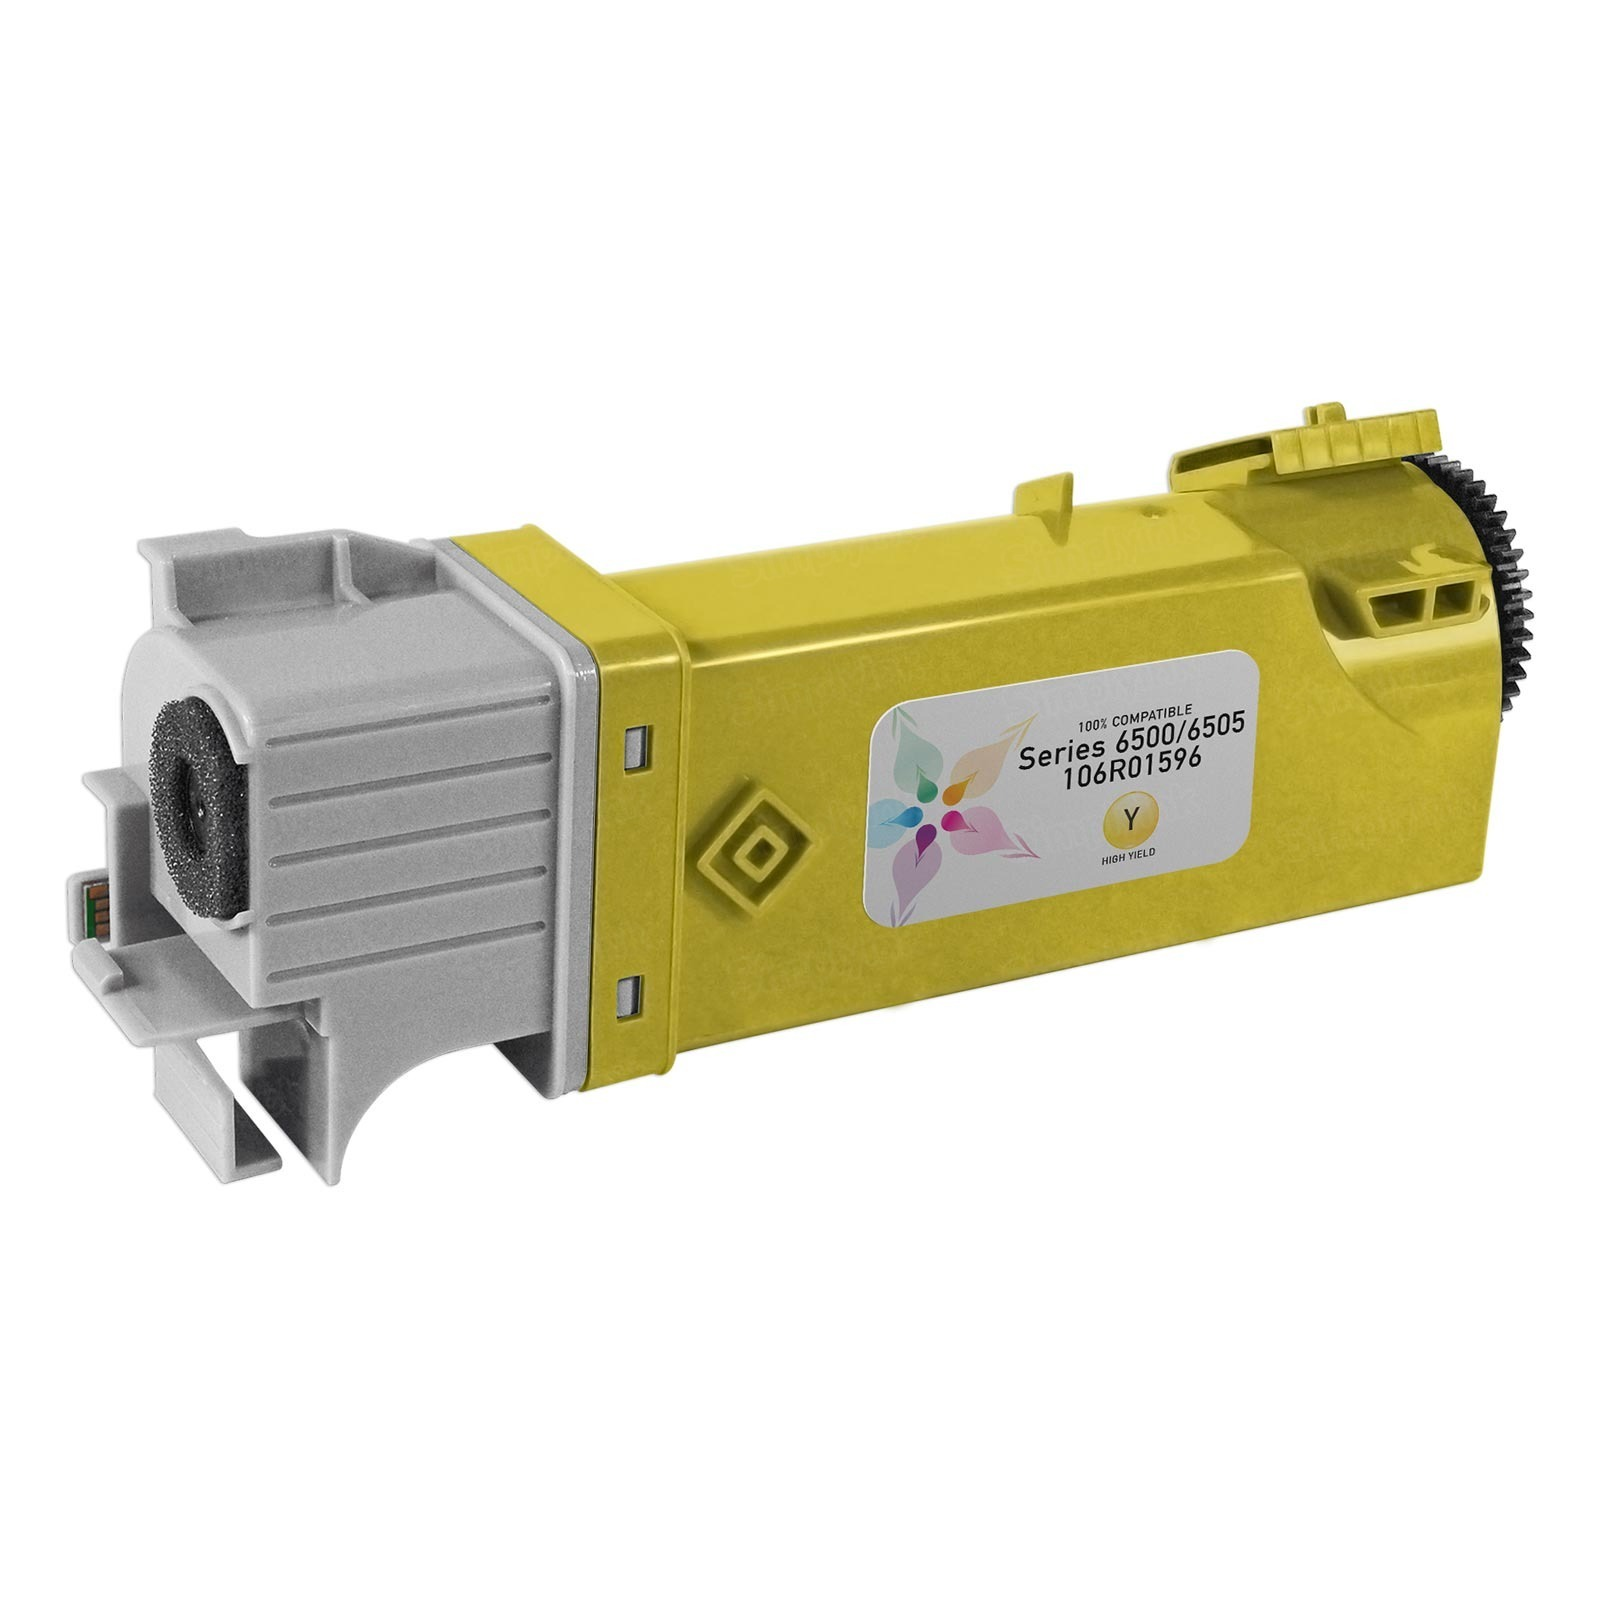 Compatible Xerox Phaser 6500/WorkCentre 6505 HY Yellow Toner